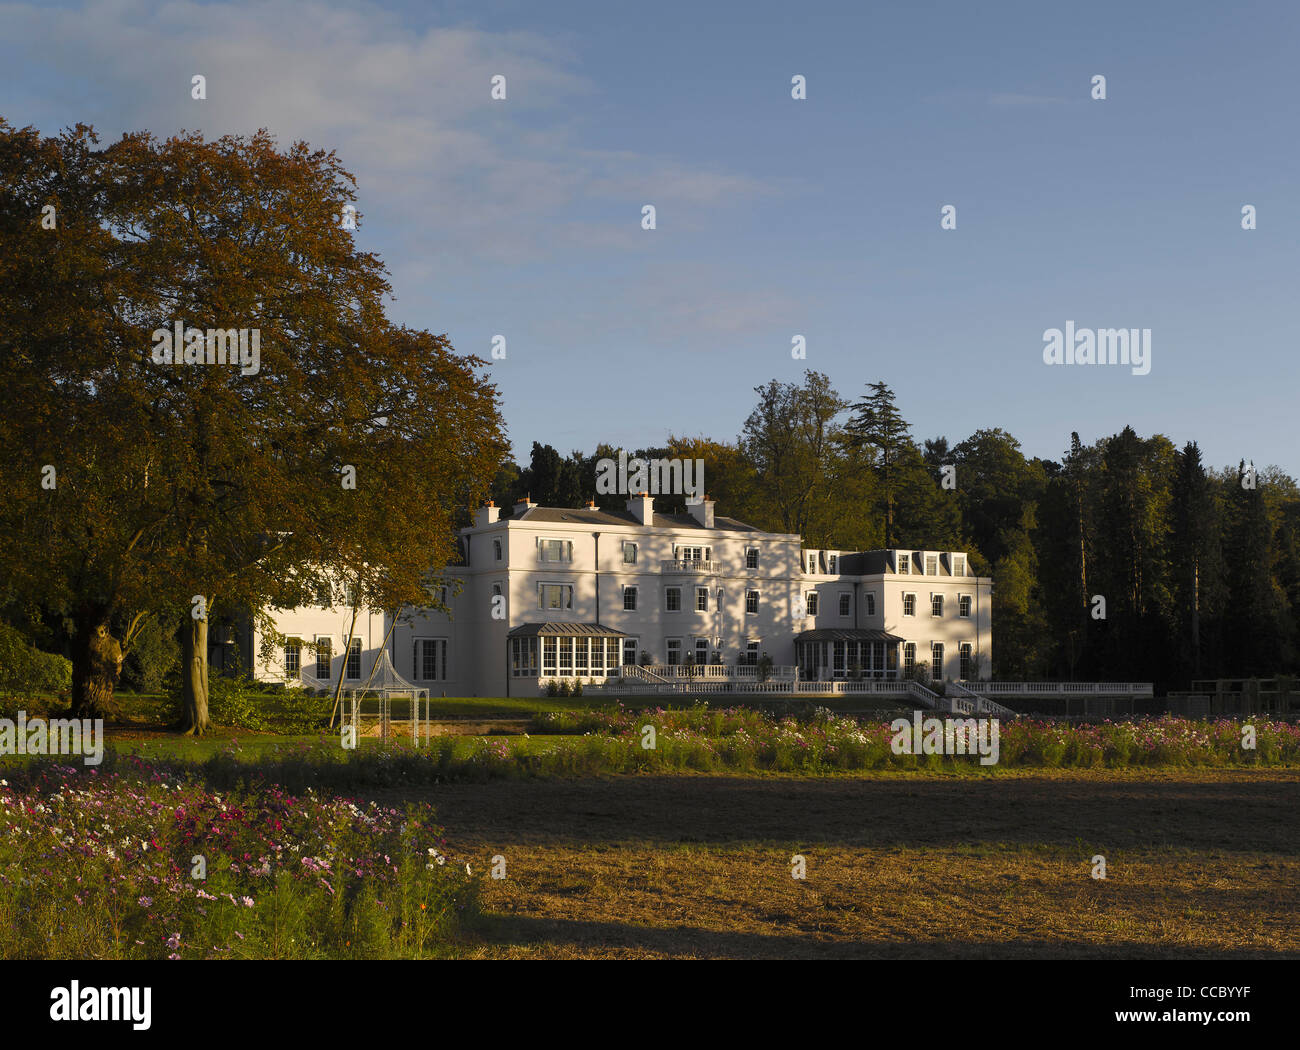 Coworth Park Is A New Luxury Country House Hotel Set In Beautiful Parkland Near Ascot, Berkshire, England, Uk. It''S Stock Photo